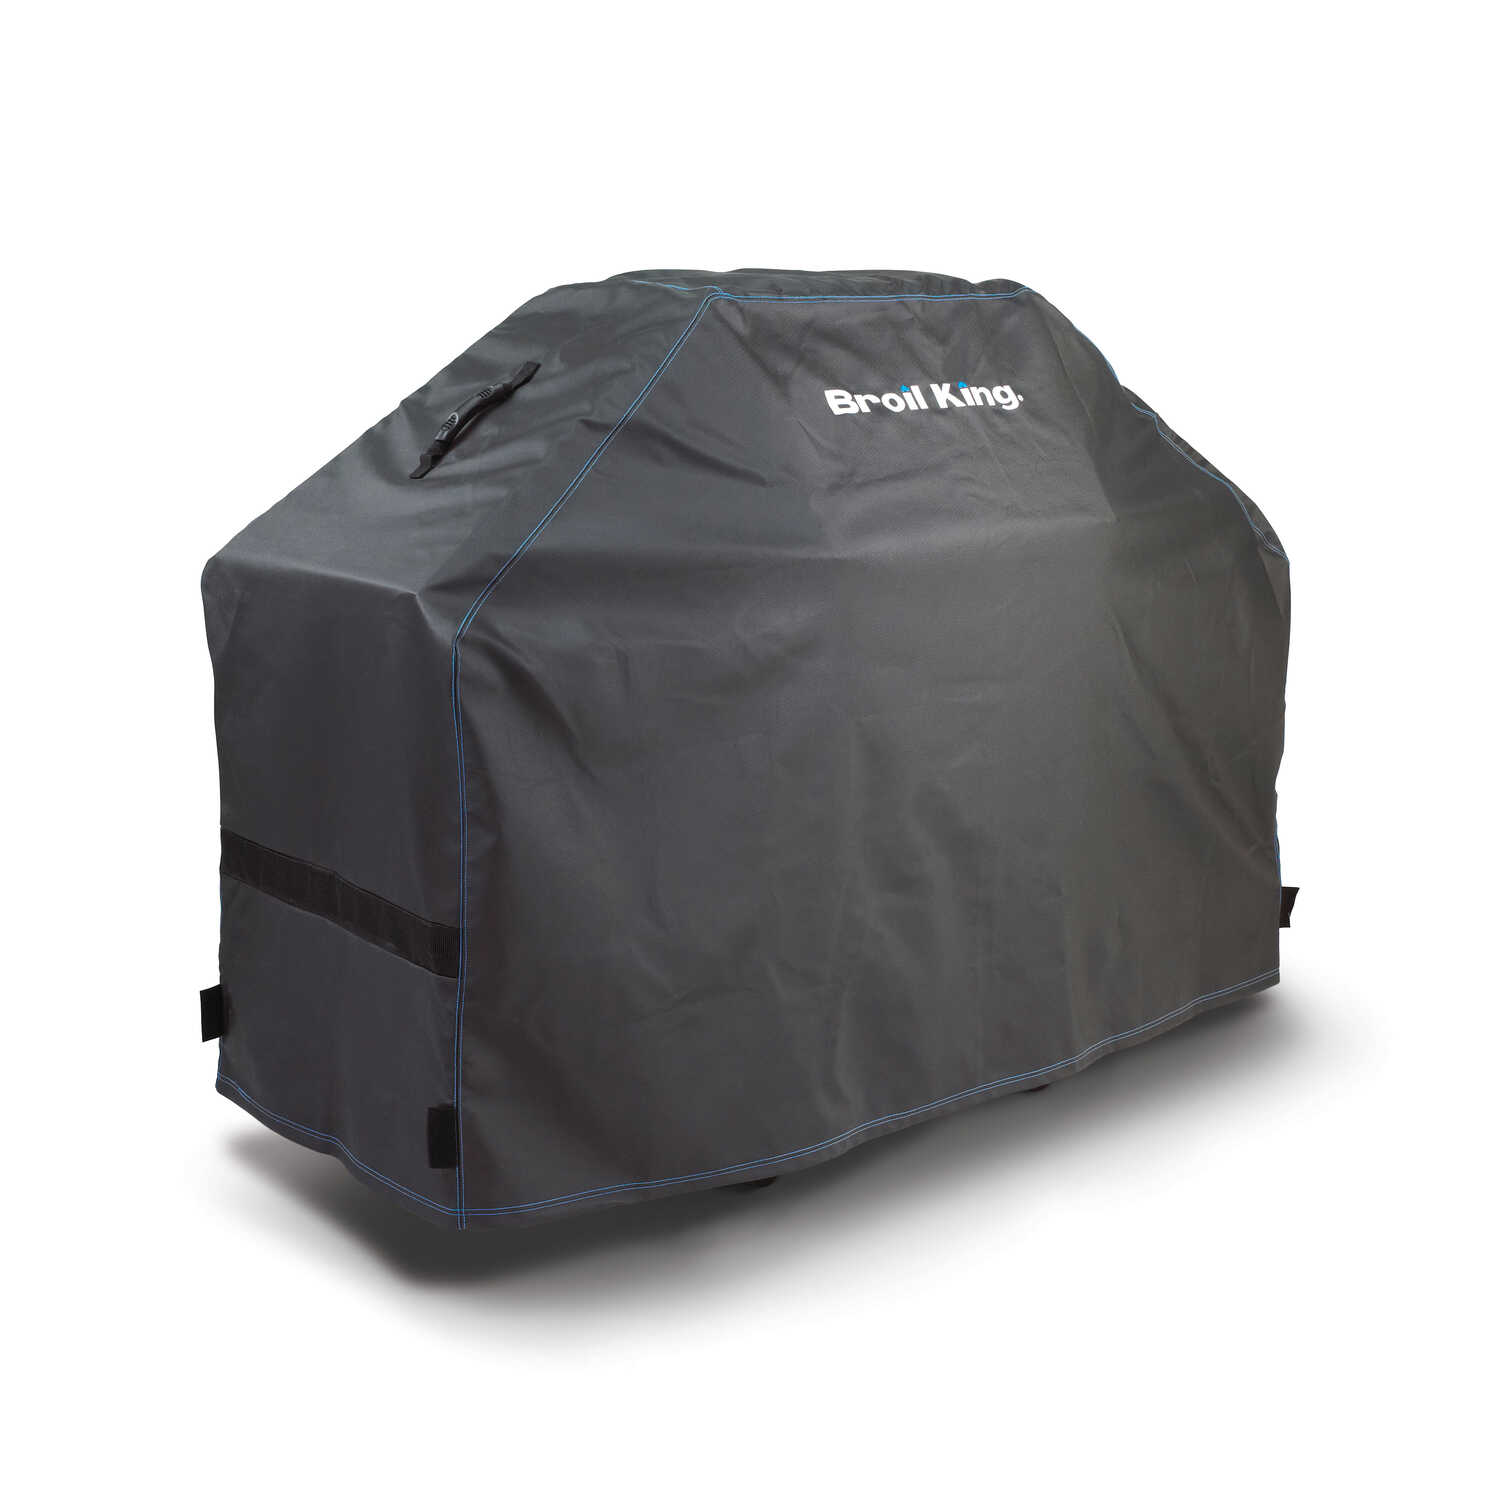 Broil King  Black  Grill Cover  64 in. W x 23 in. D x 45.5 in. H For Baron 500 series